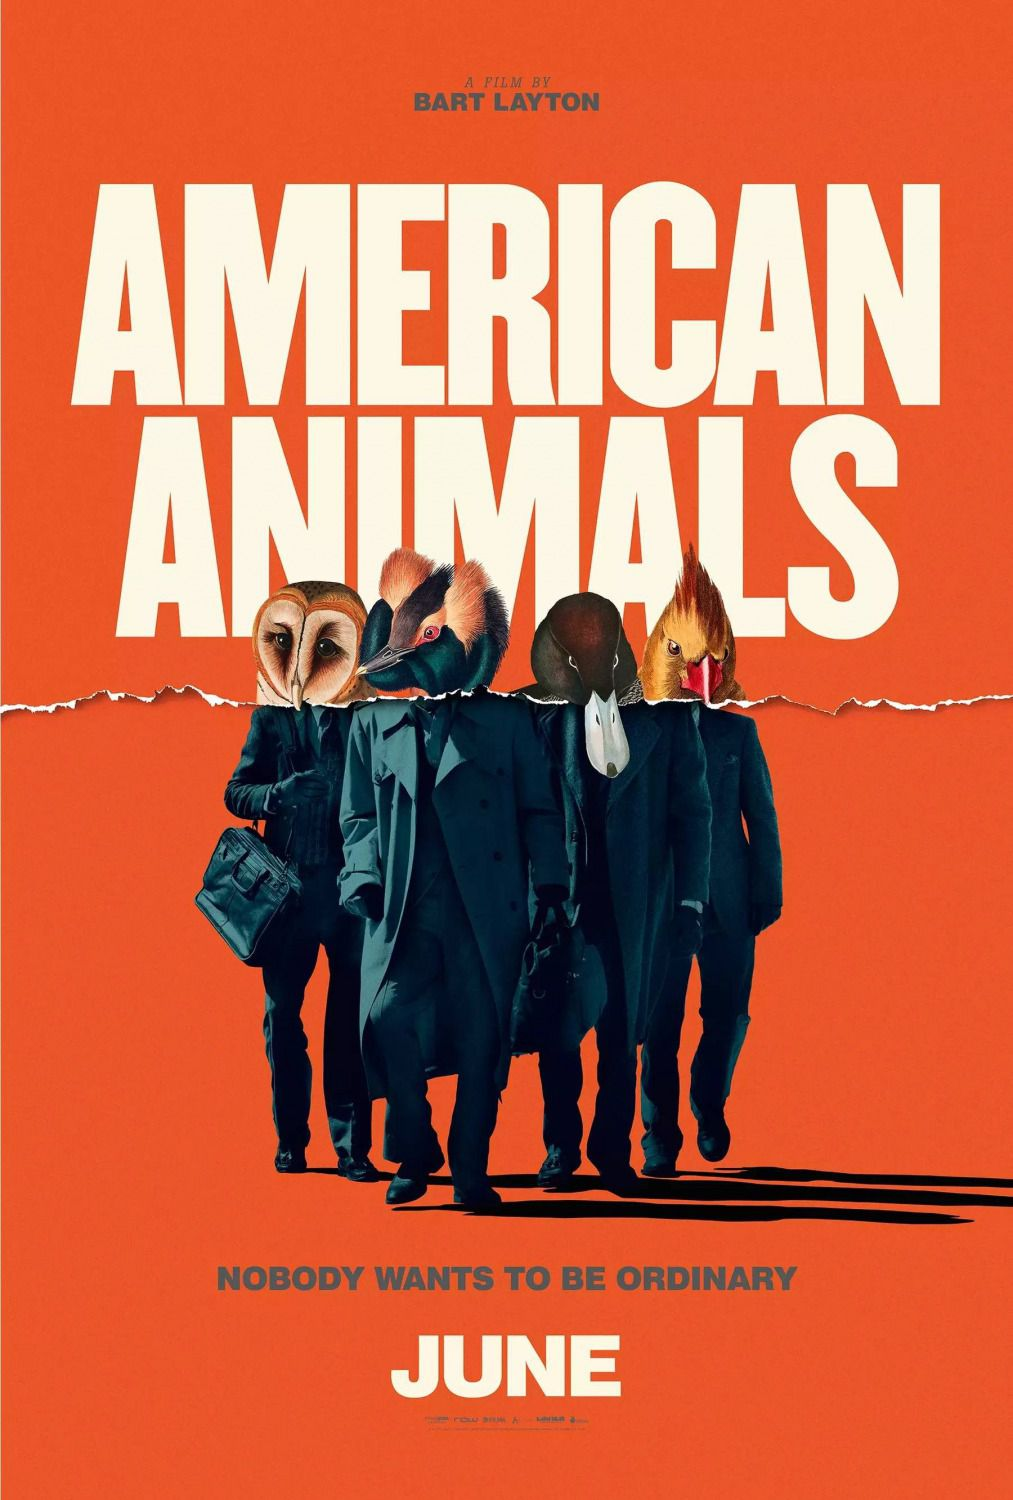 American Animals - Nobody wants to be ordinary - Evan Peters, Barry Keoghan, Blake Jenner, Jared Abrahamson - poster 2018